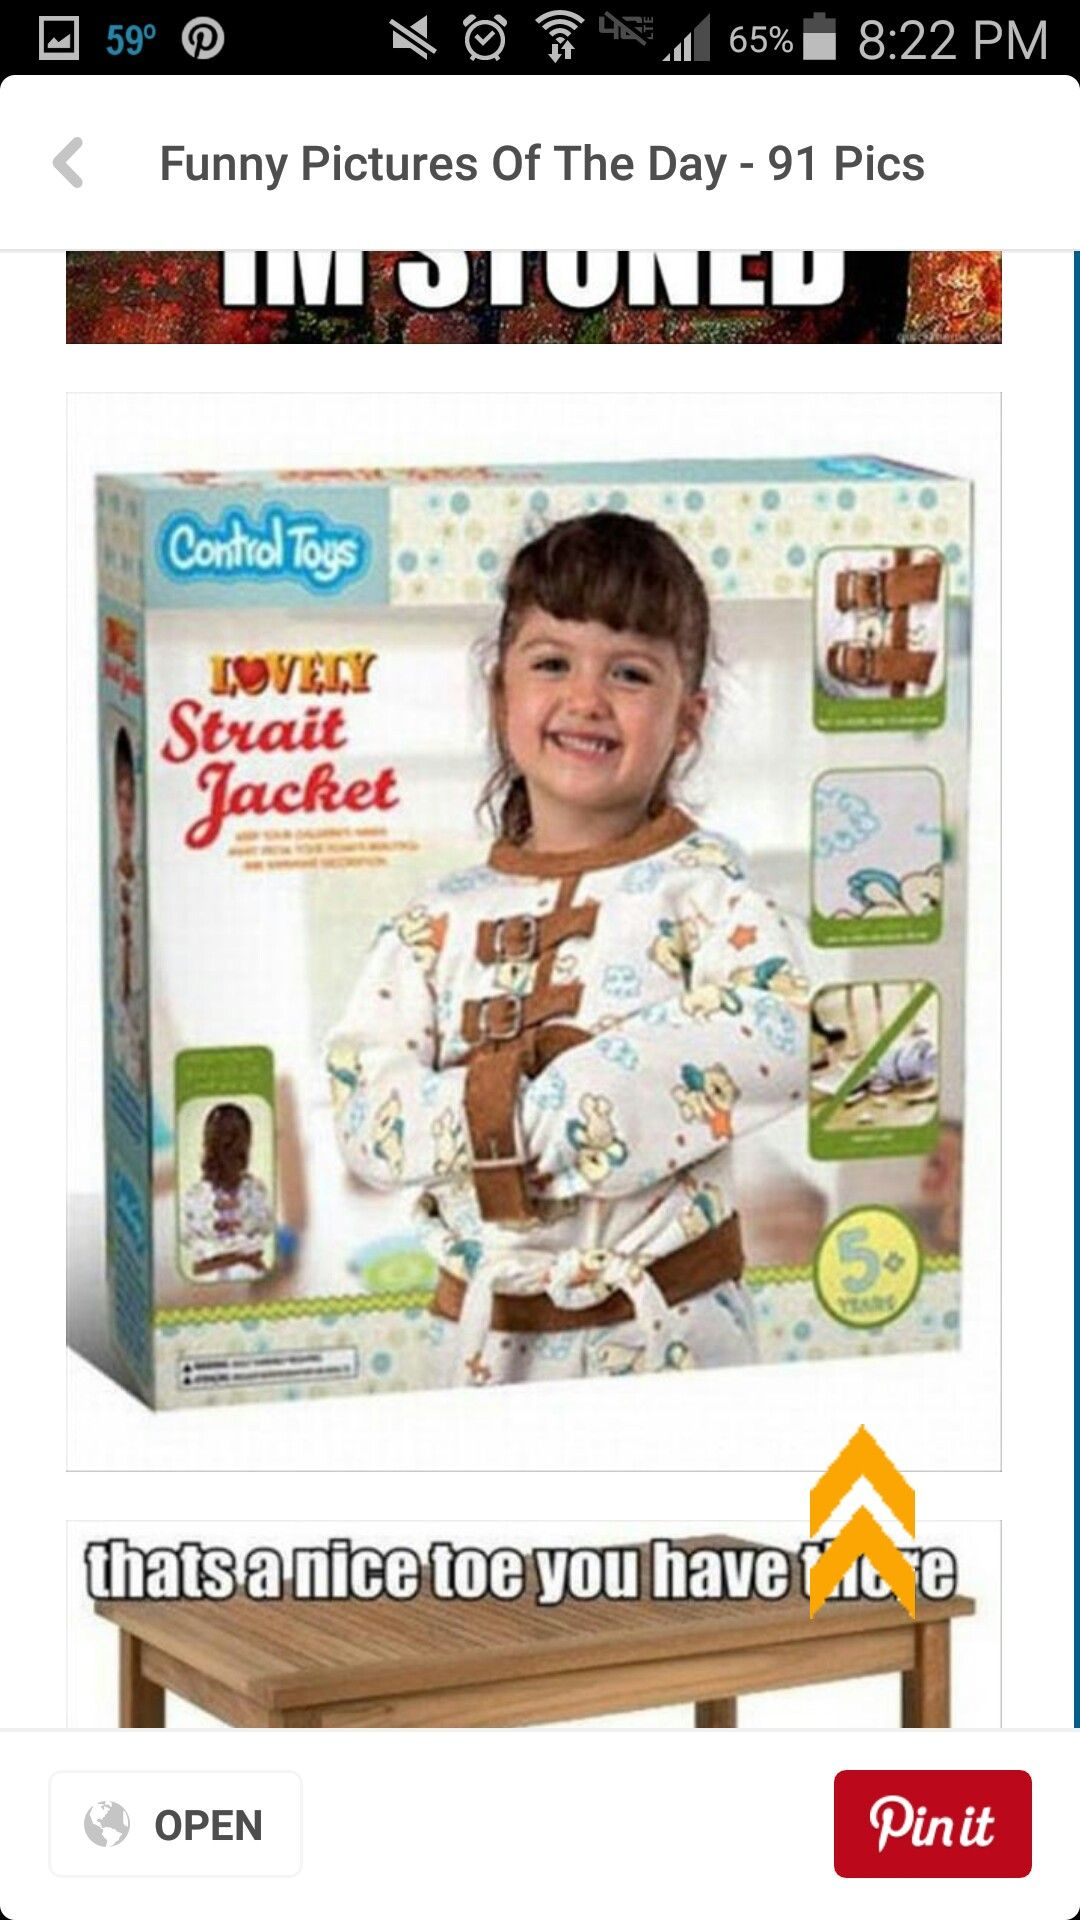 Awkward toys/objects for kids.... a straight jacket?!